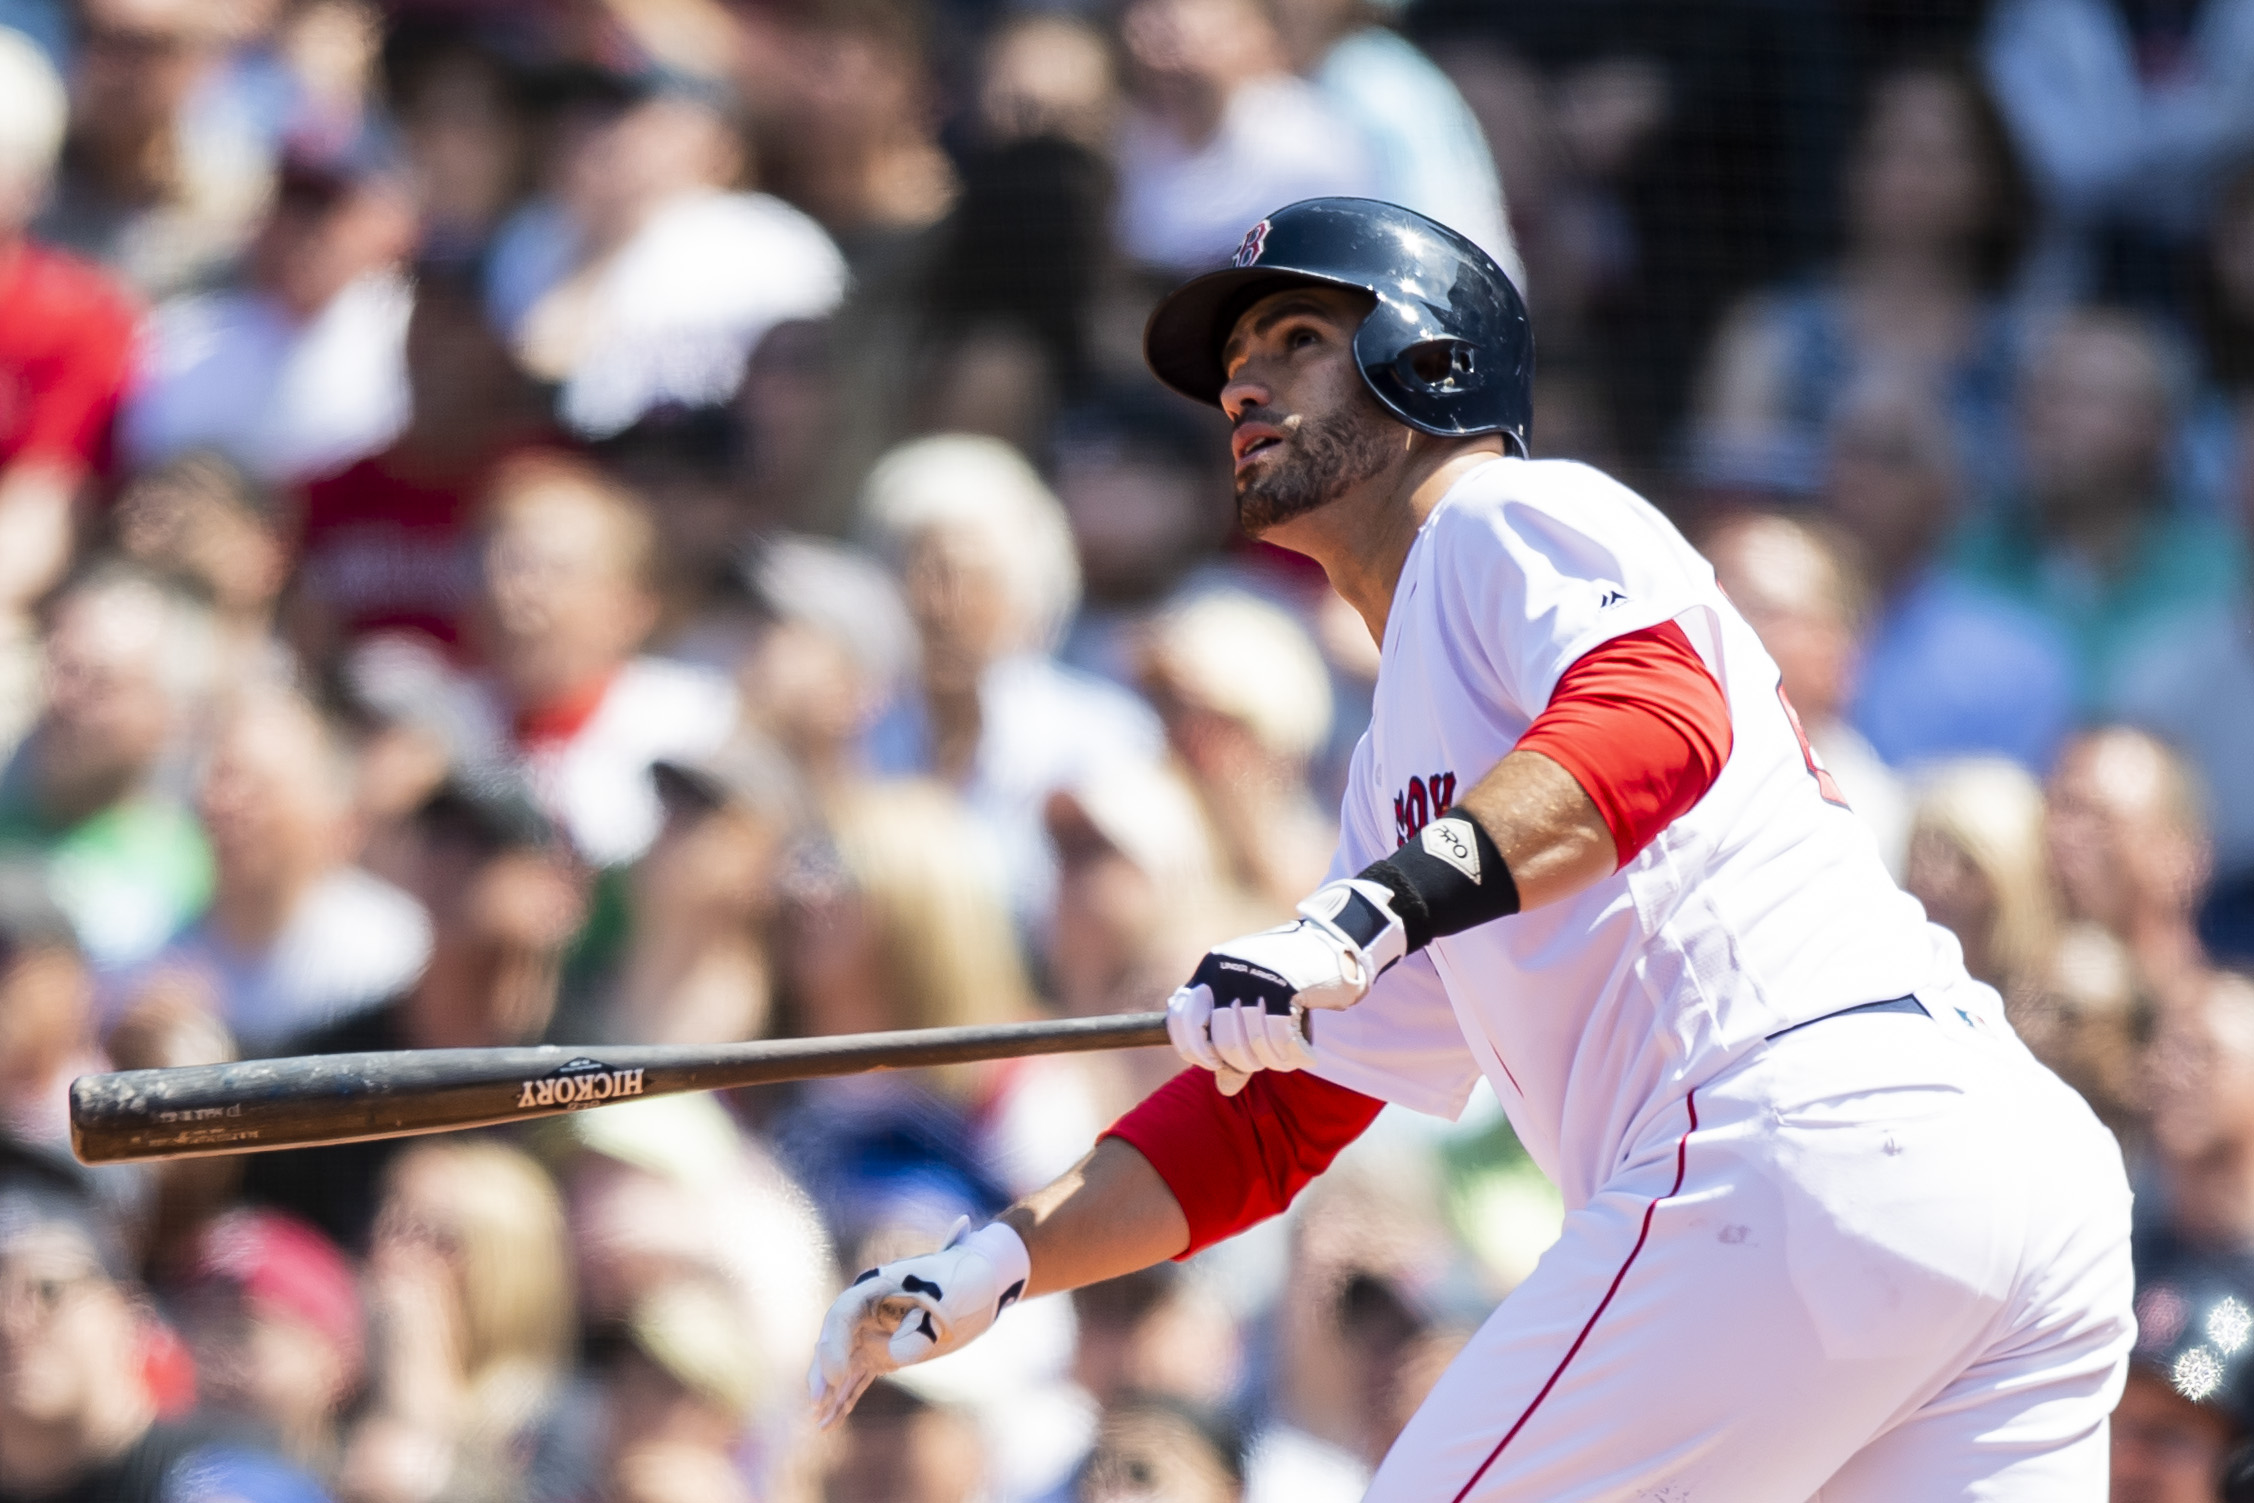 May 30, 2018, Boston, MA: Boston Red Sox J.D. Martinez swings and hits a home run as the Boston Red Sox face the Toronto Blue Jays at Fenway Park in Boston, Massachusetts on Wednesday, May 30, 2018. (Photo by Matthew Thomas/Boston Red Sox)